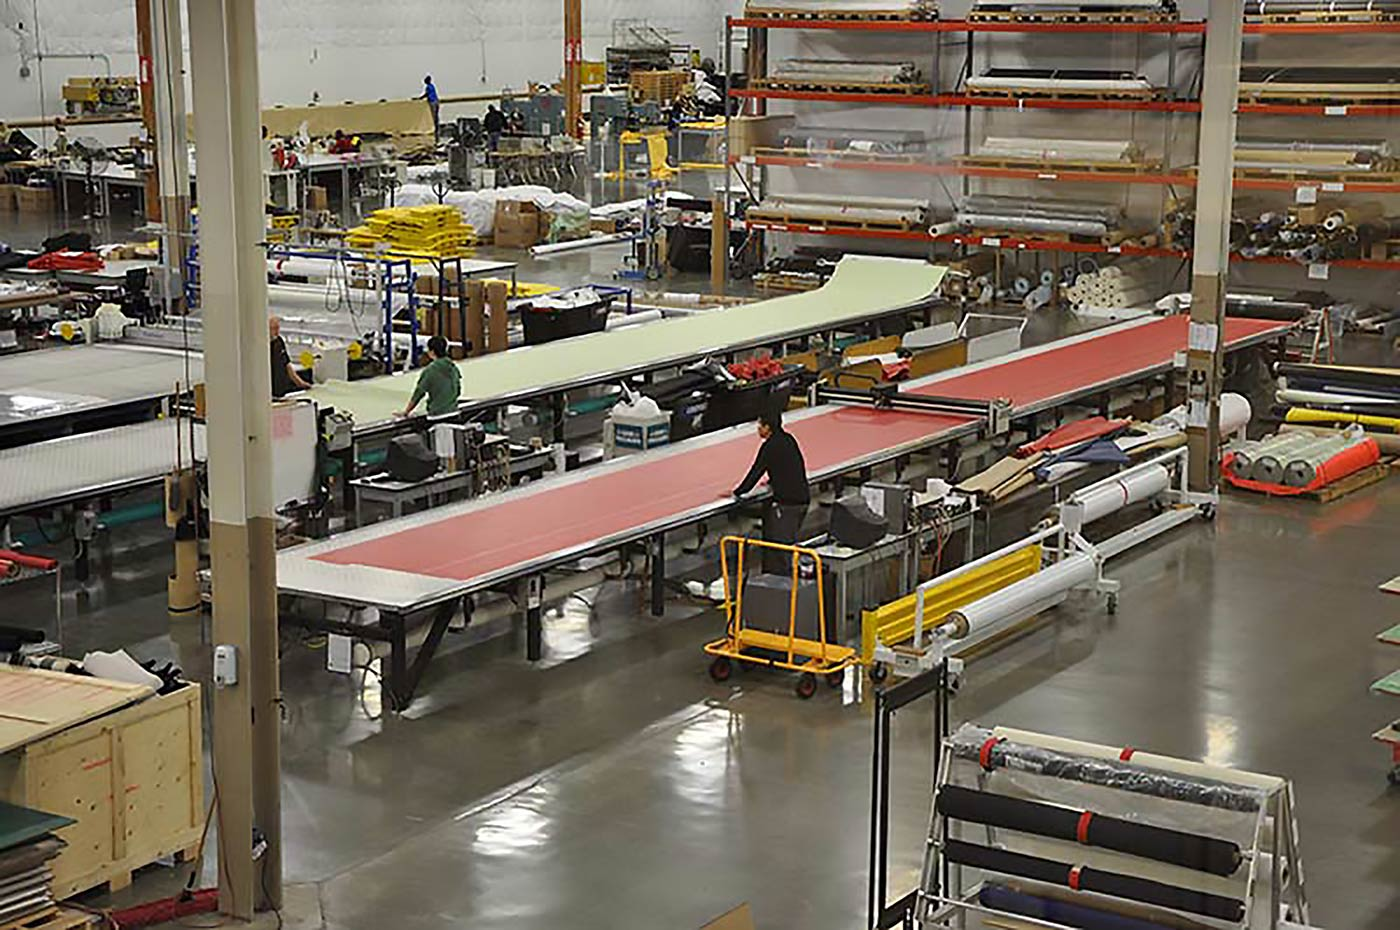 Sky view of the Rainier fabric department in action